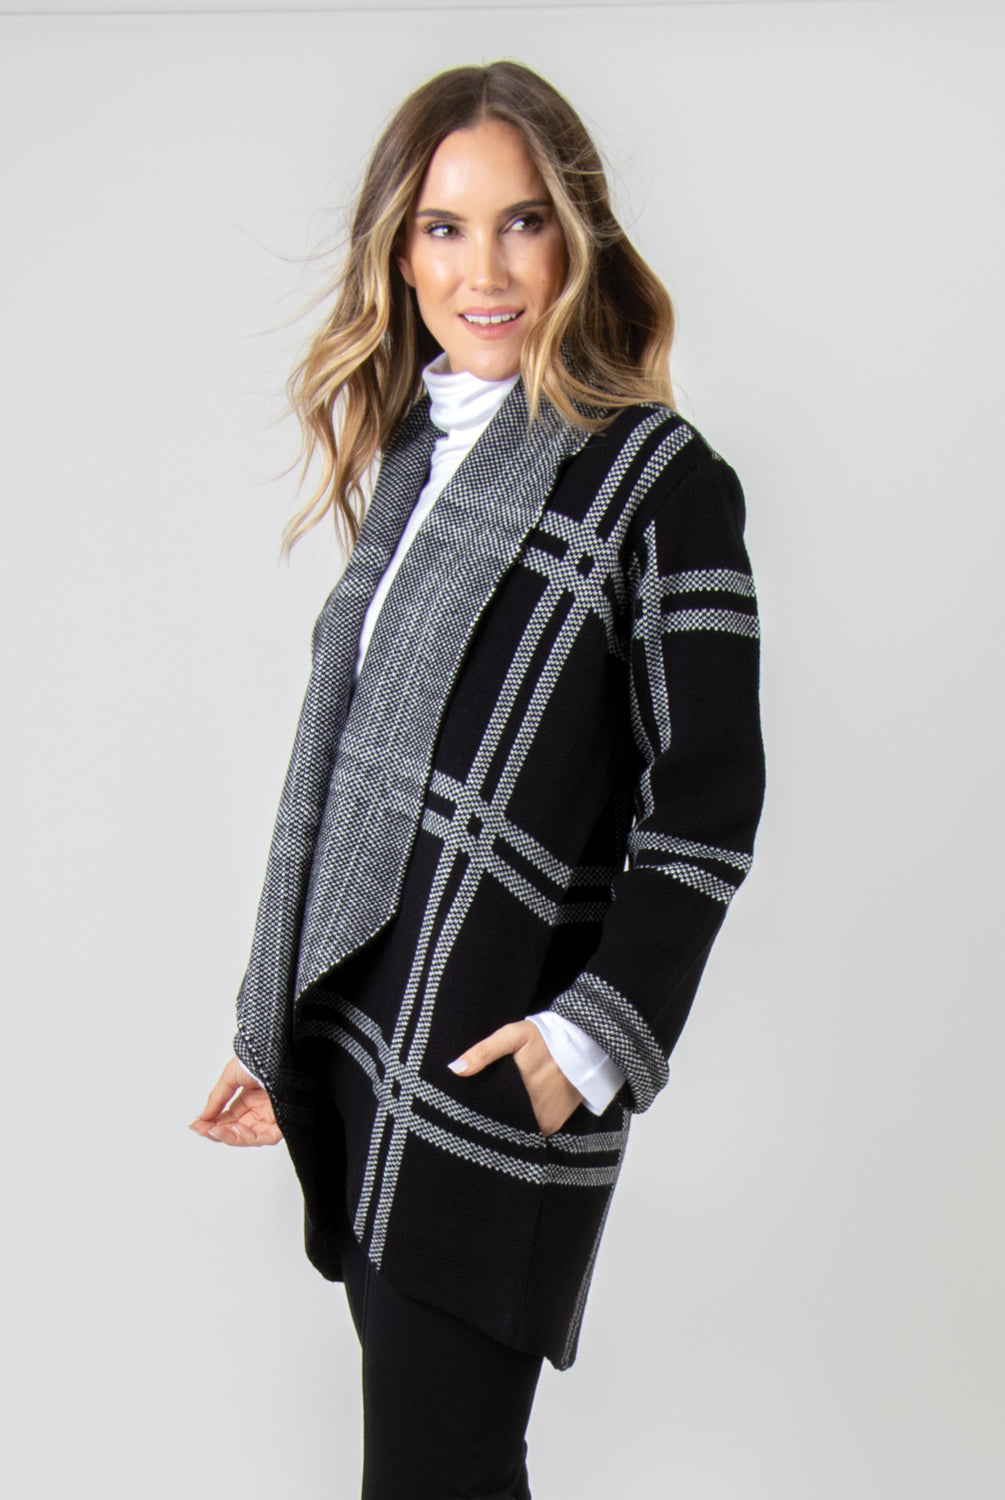 Windowpane Plaid Knit Jacket